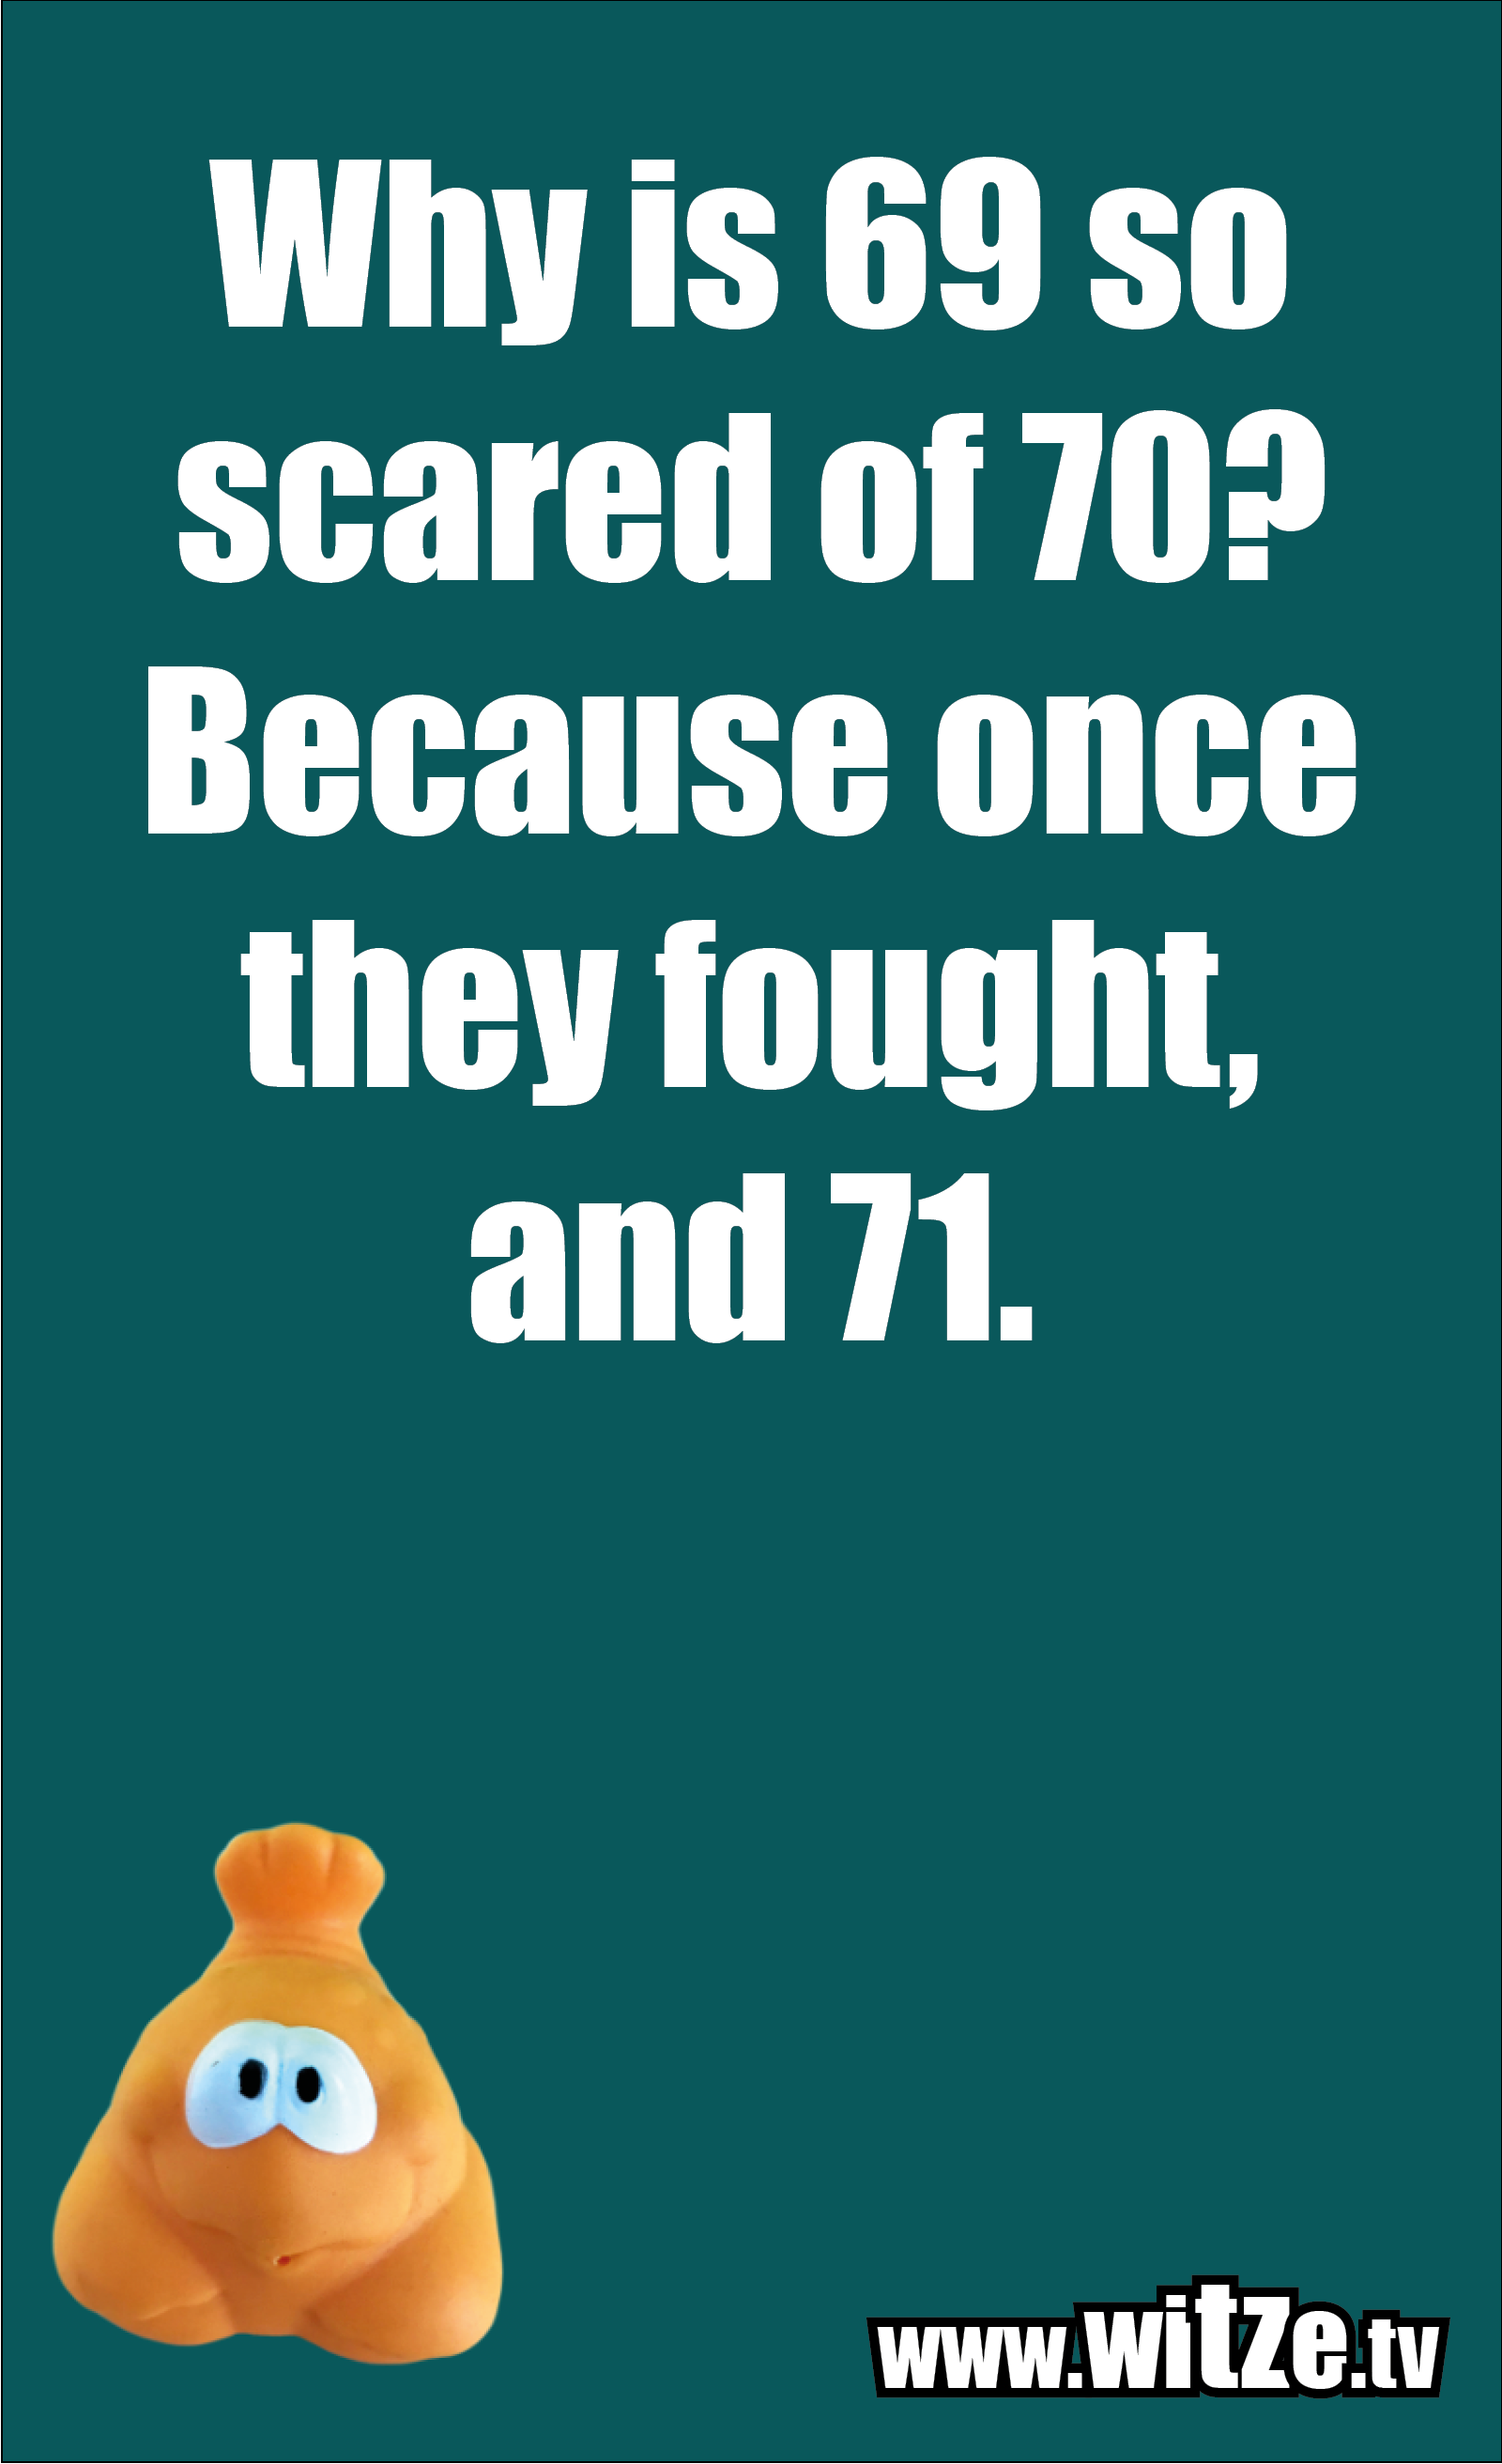 Math joke… Why is 69 so scared of 70? Because once they fought, and 71.